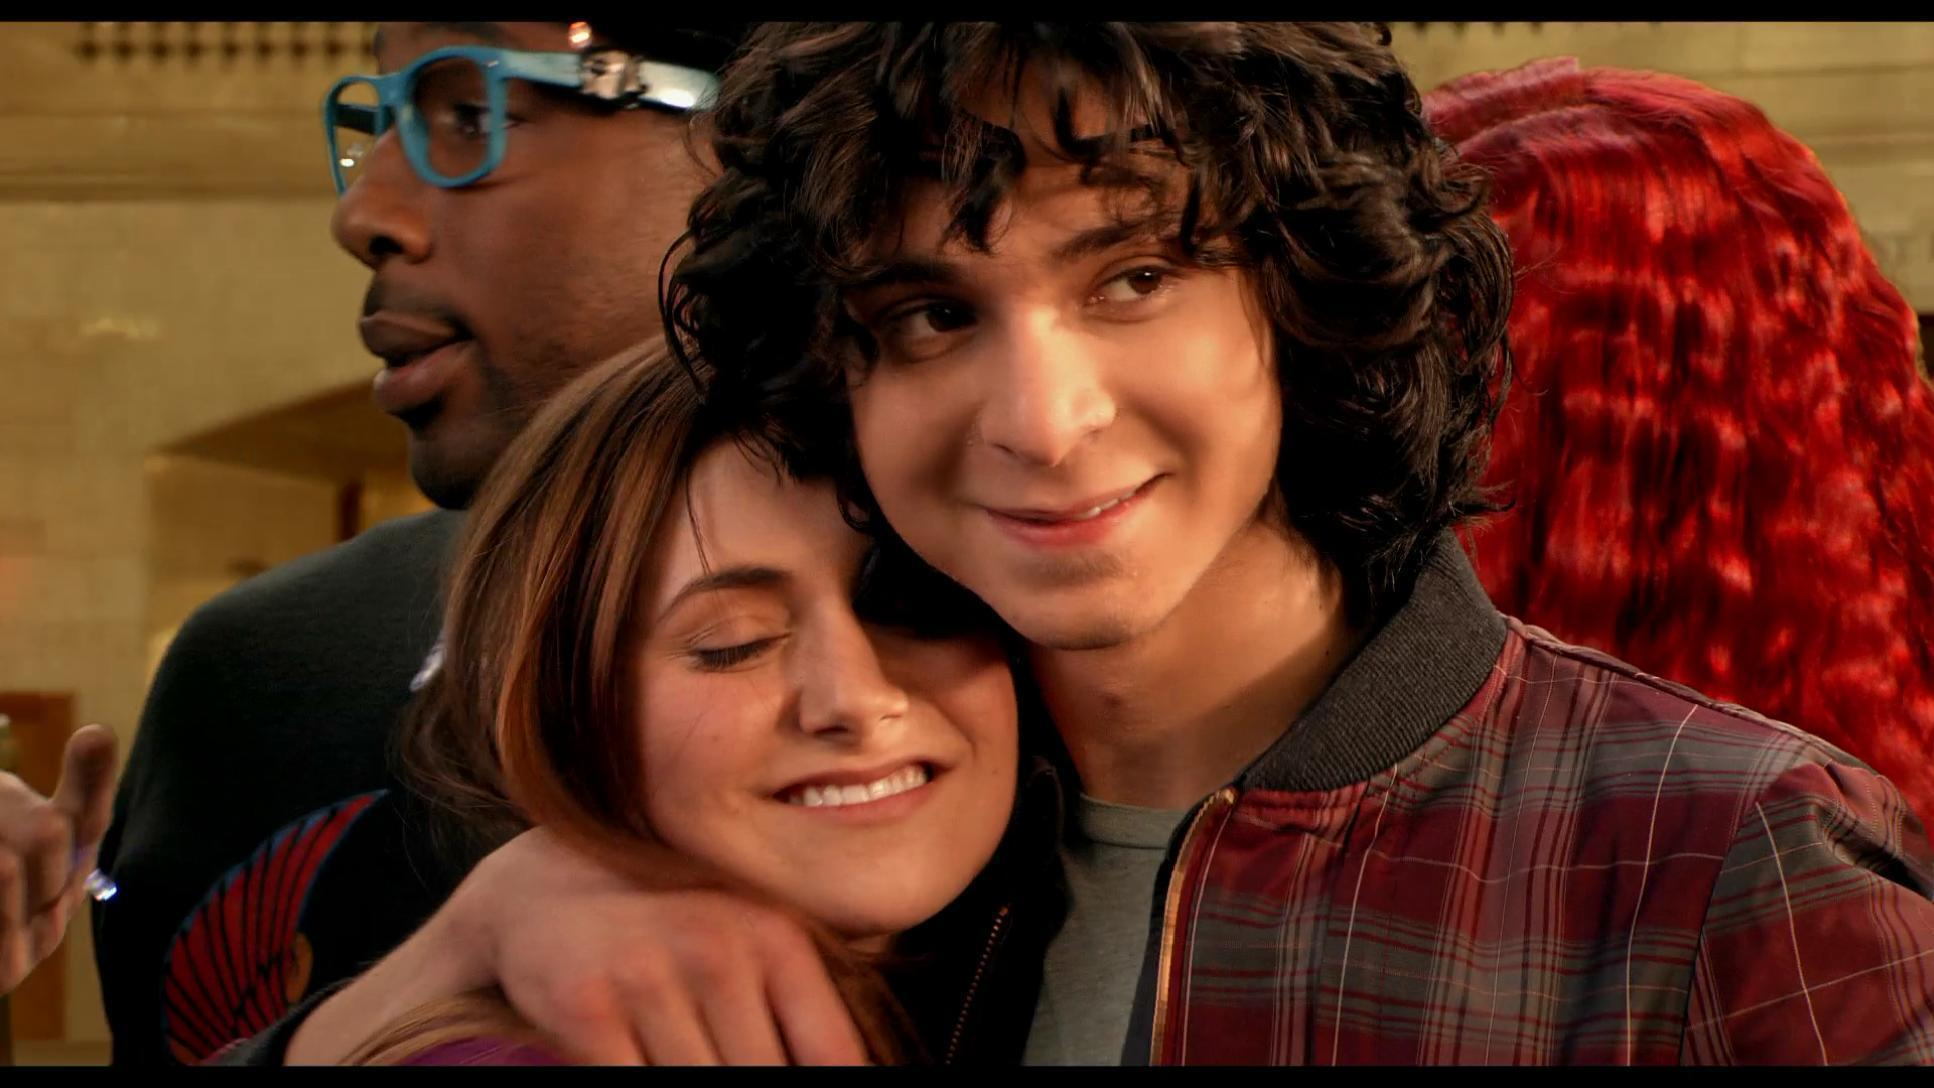 Do you think Alyson Stoner and Adam Sevani should go out ...